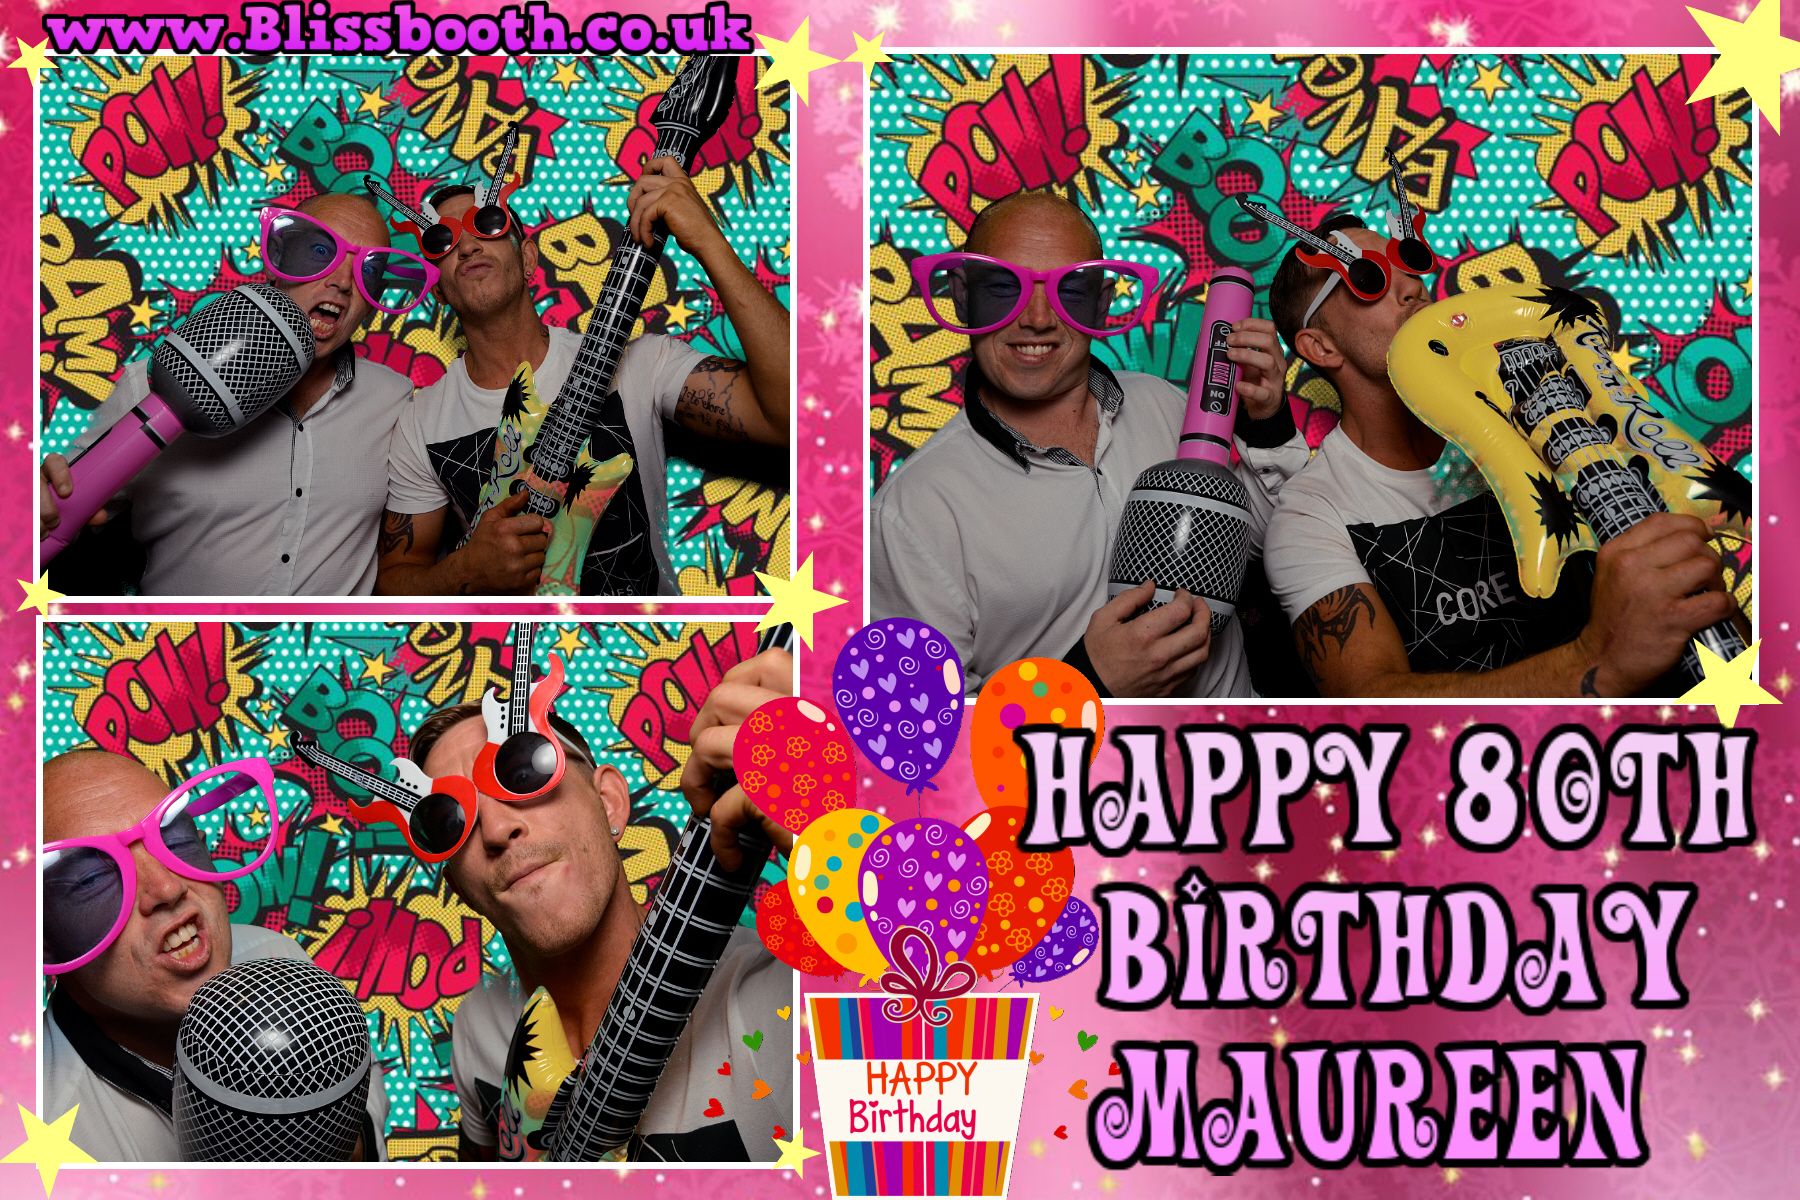 Worksop photo booth